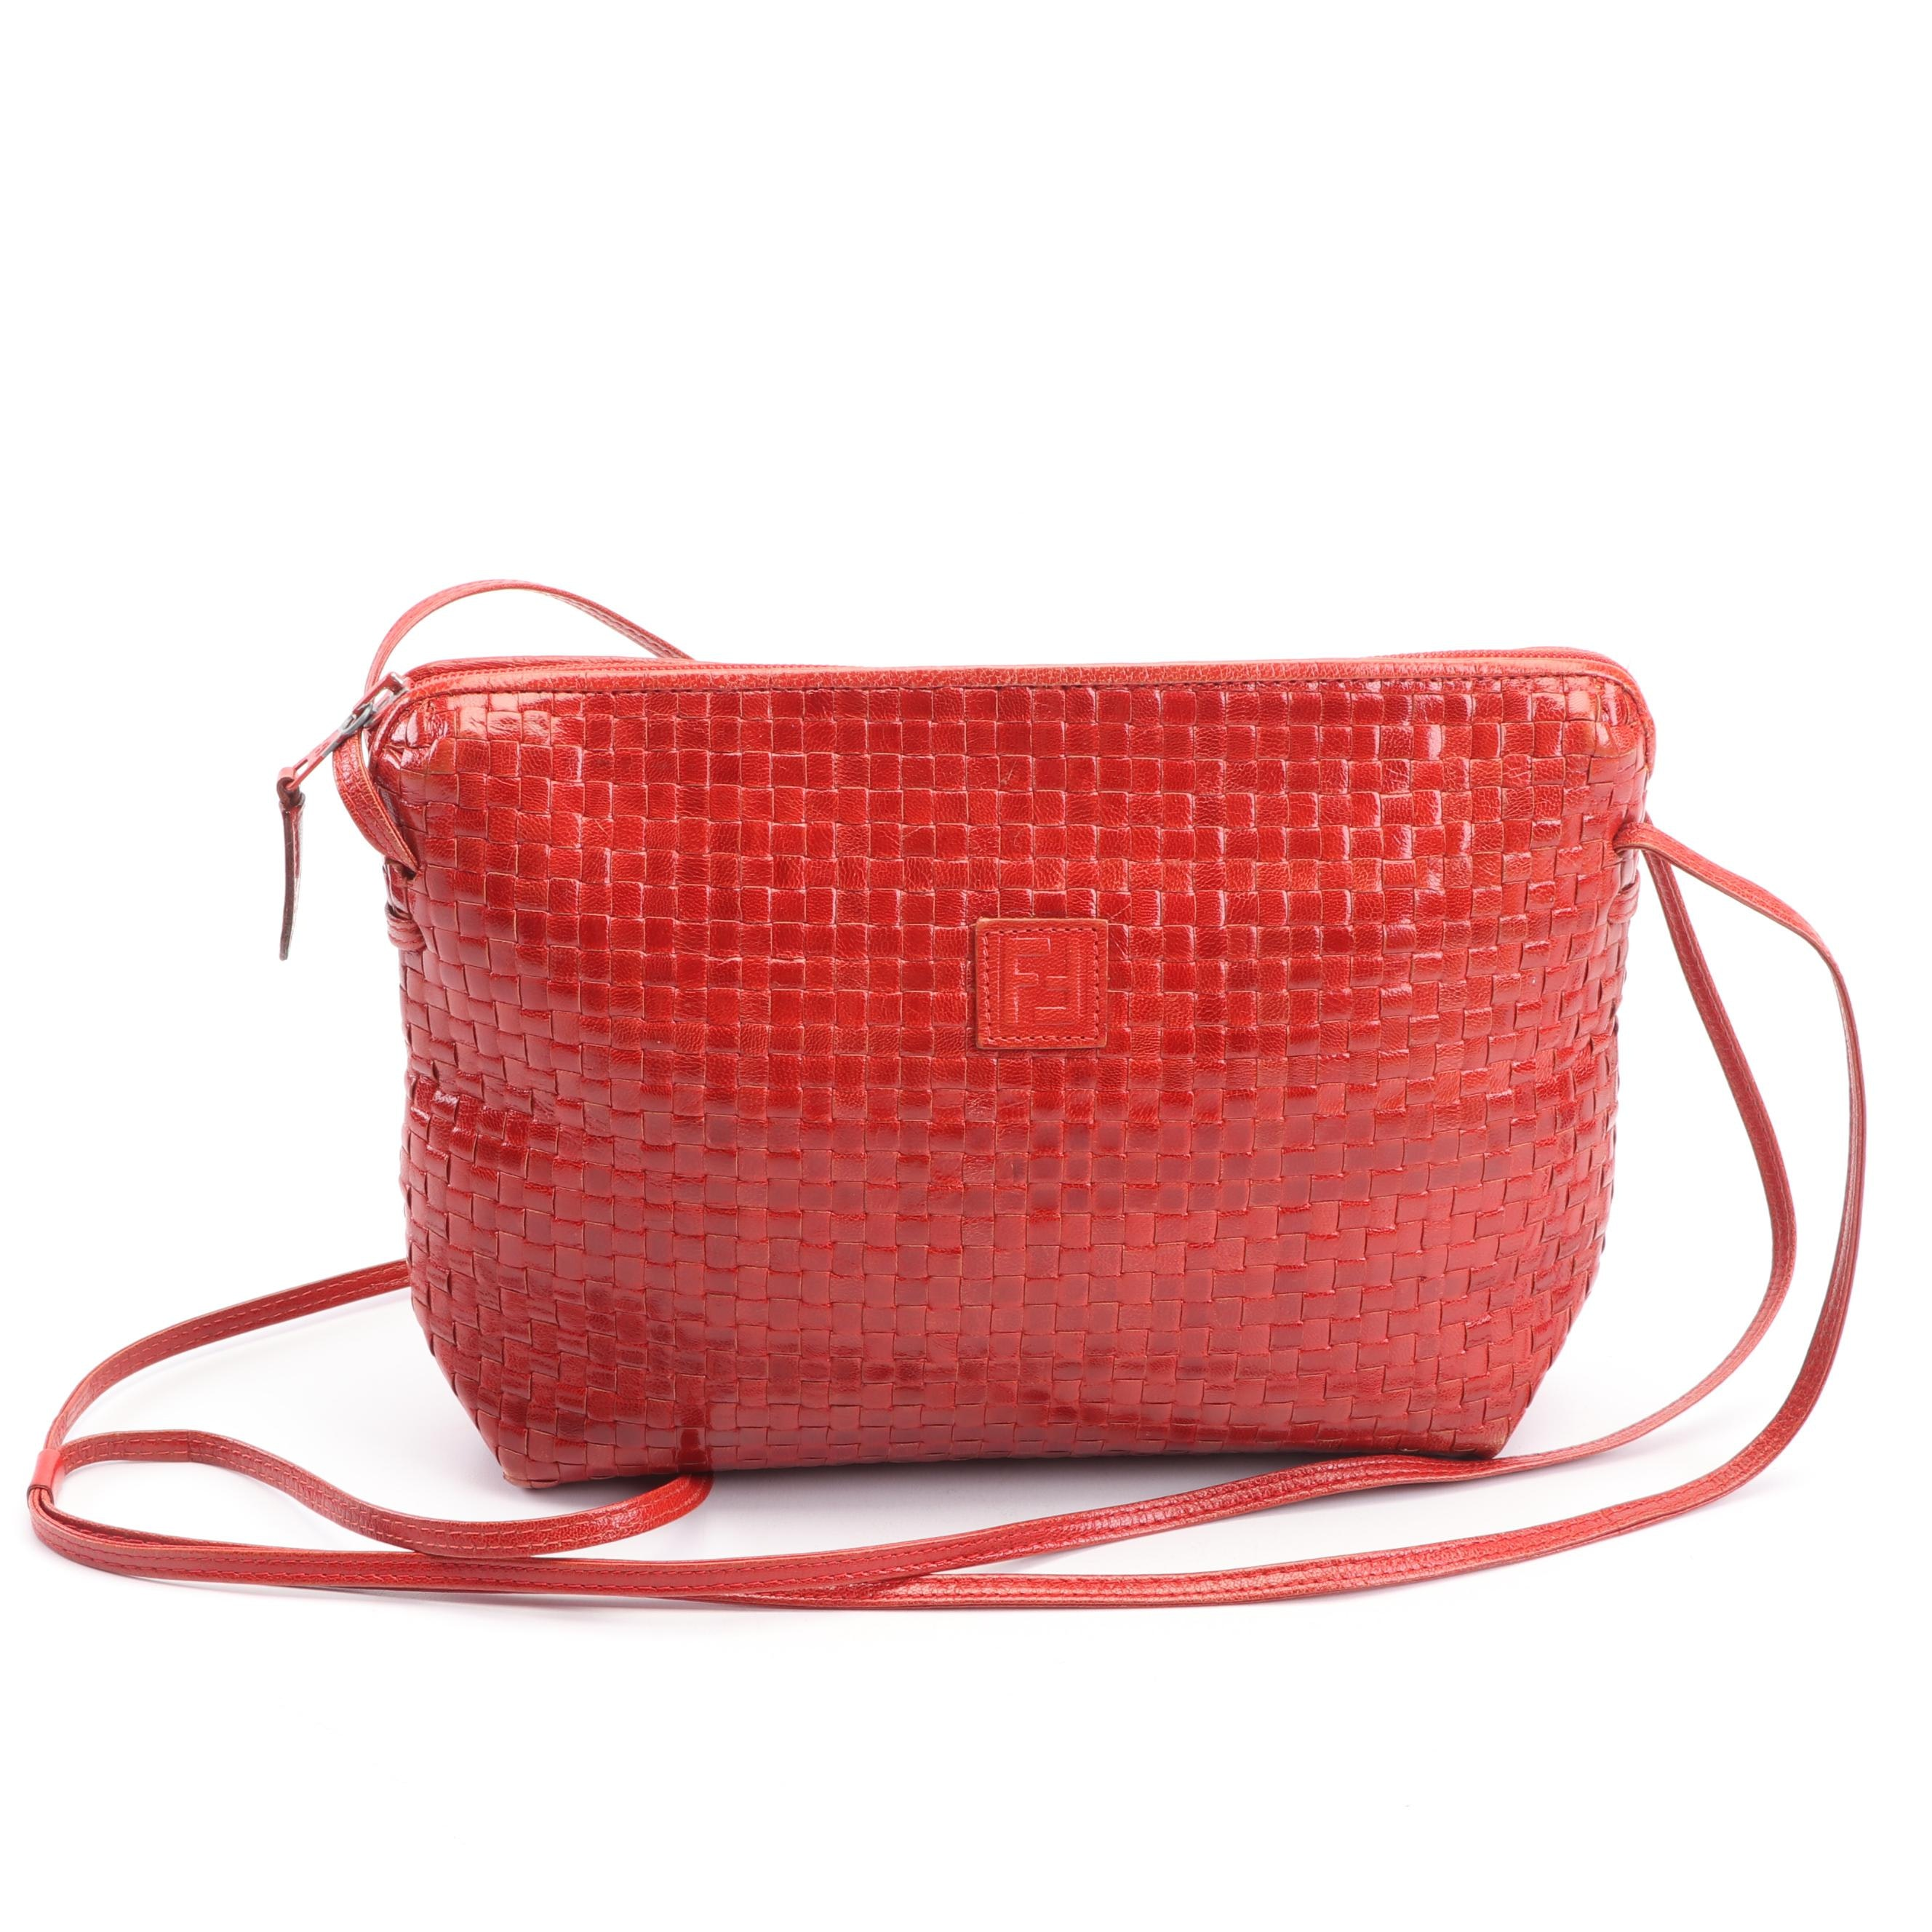 Fendi Red Woven Leather Crossbody Bag, Made in Italy